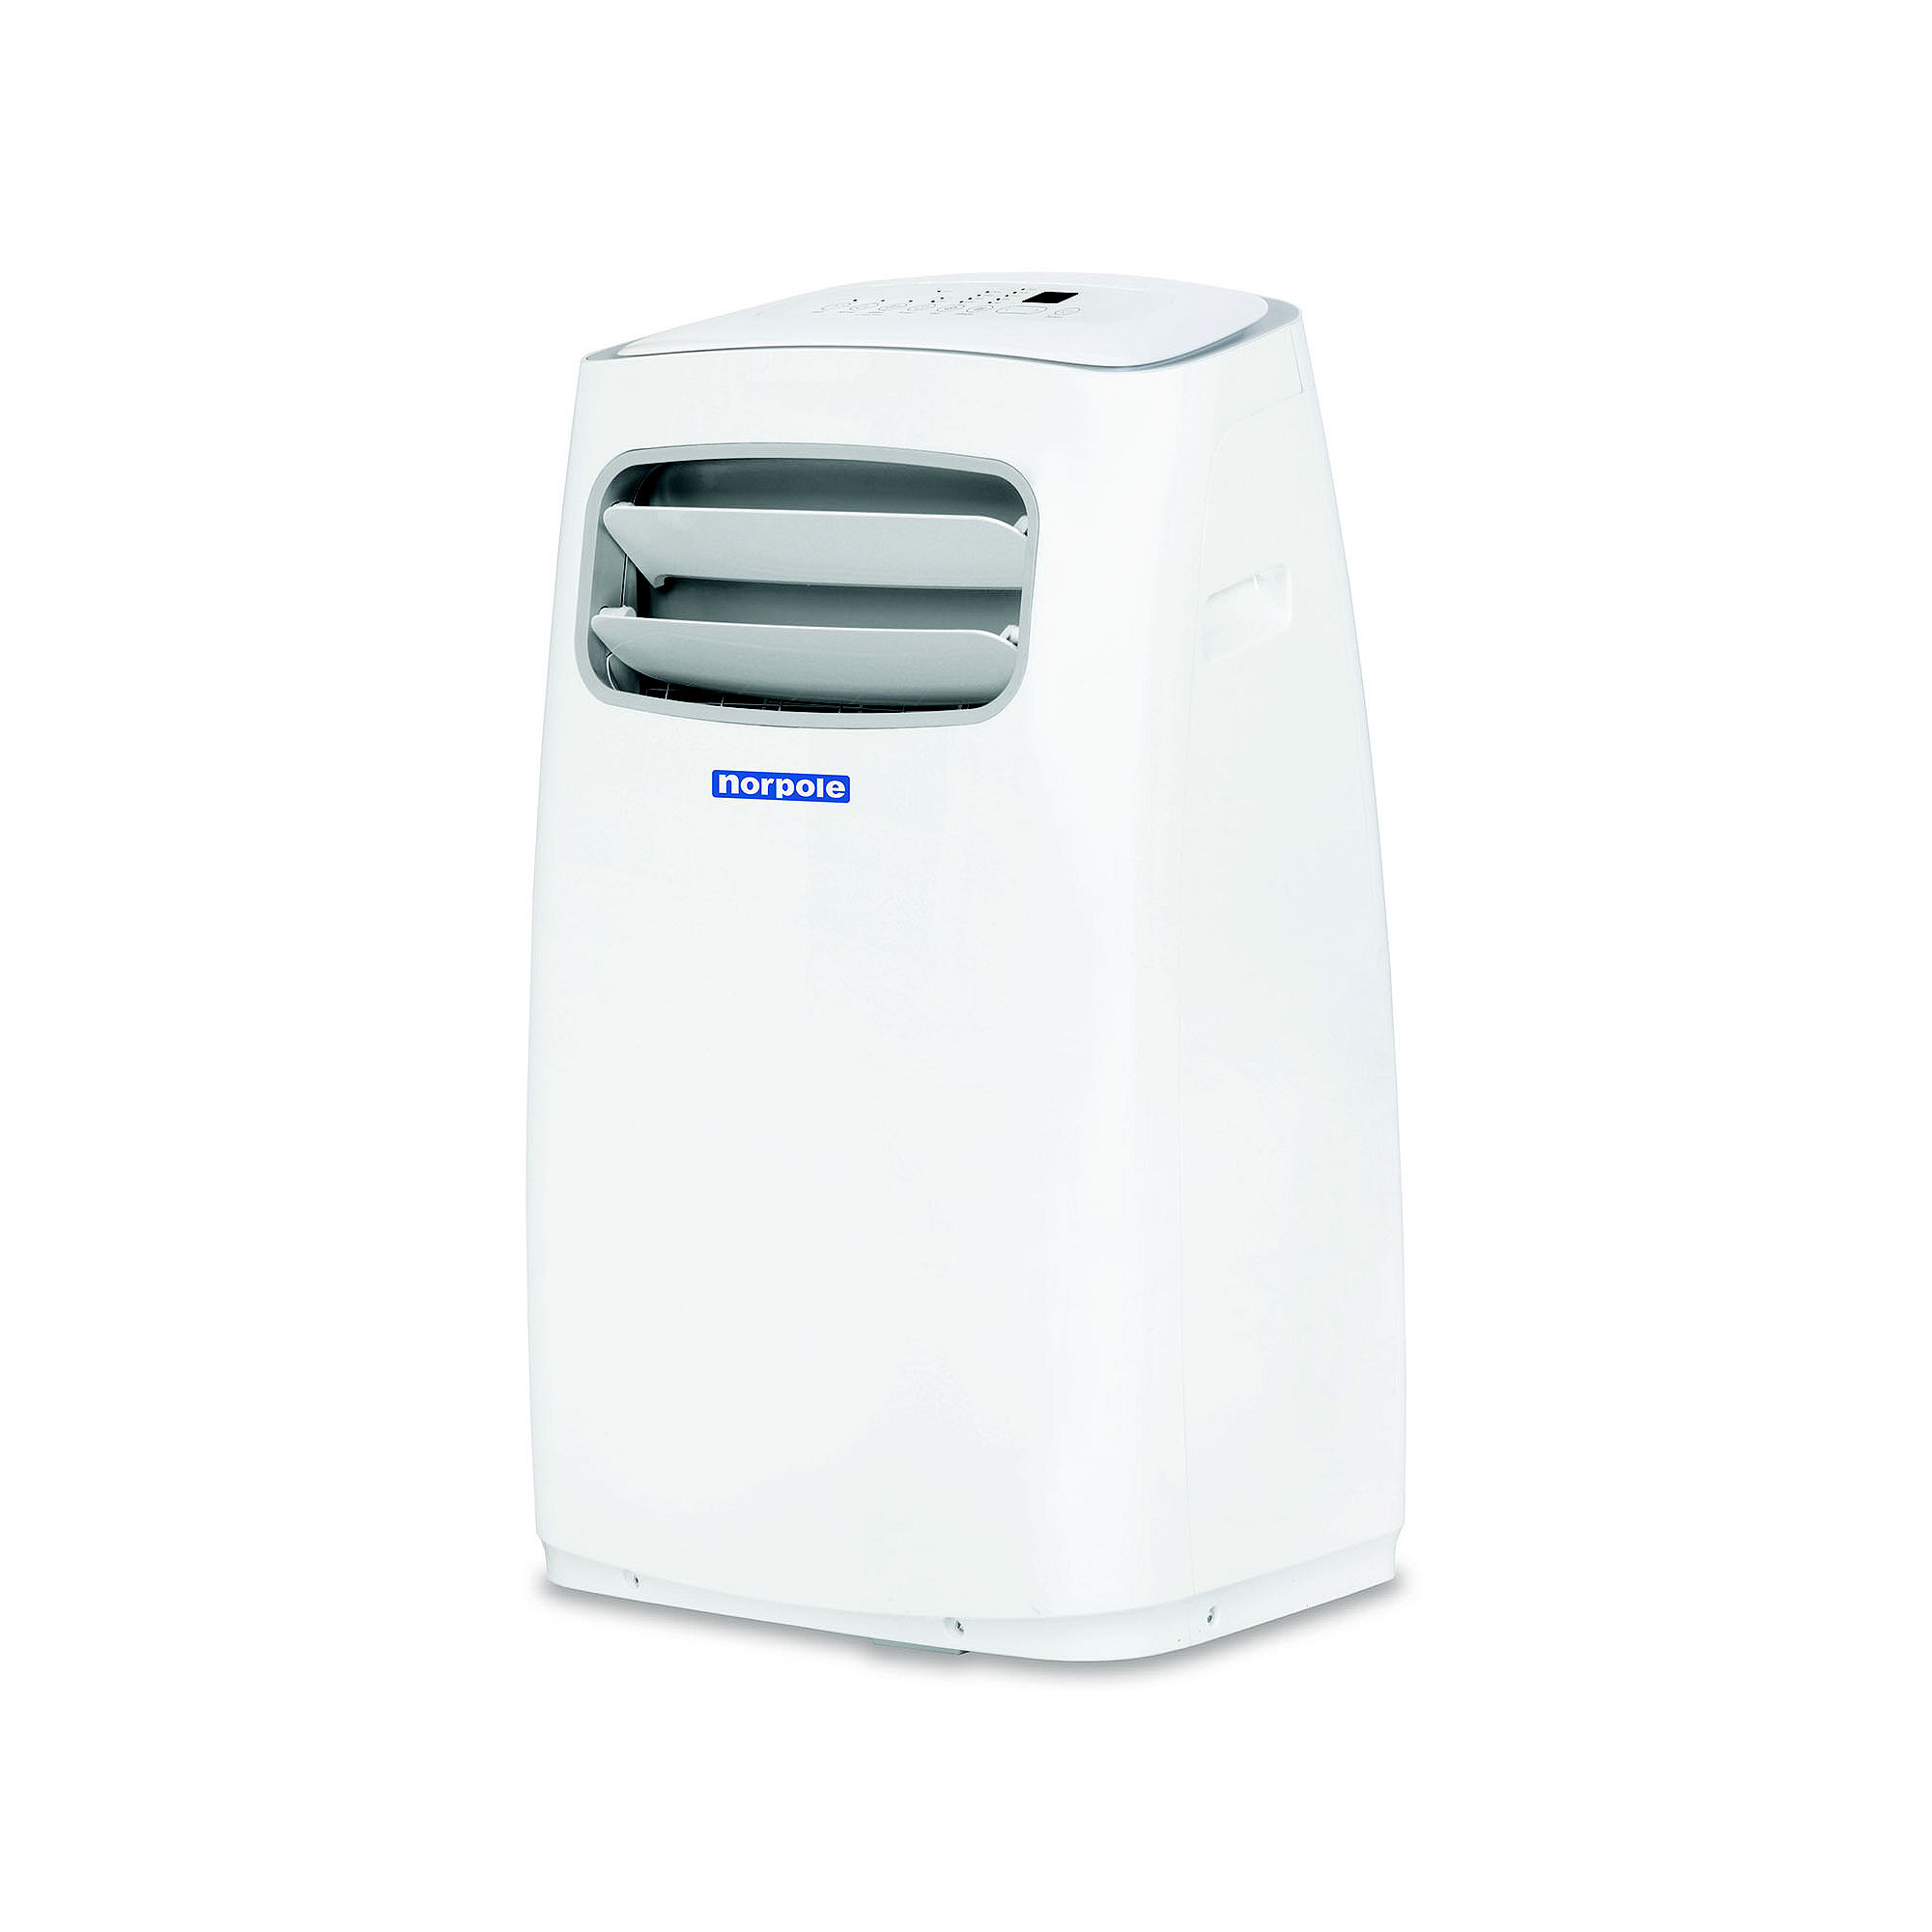 Norpole 12,000 BTU Portable Air Conditioner Heat & Cool - NPPAC12HKM